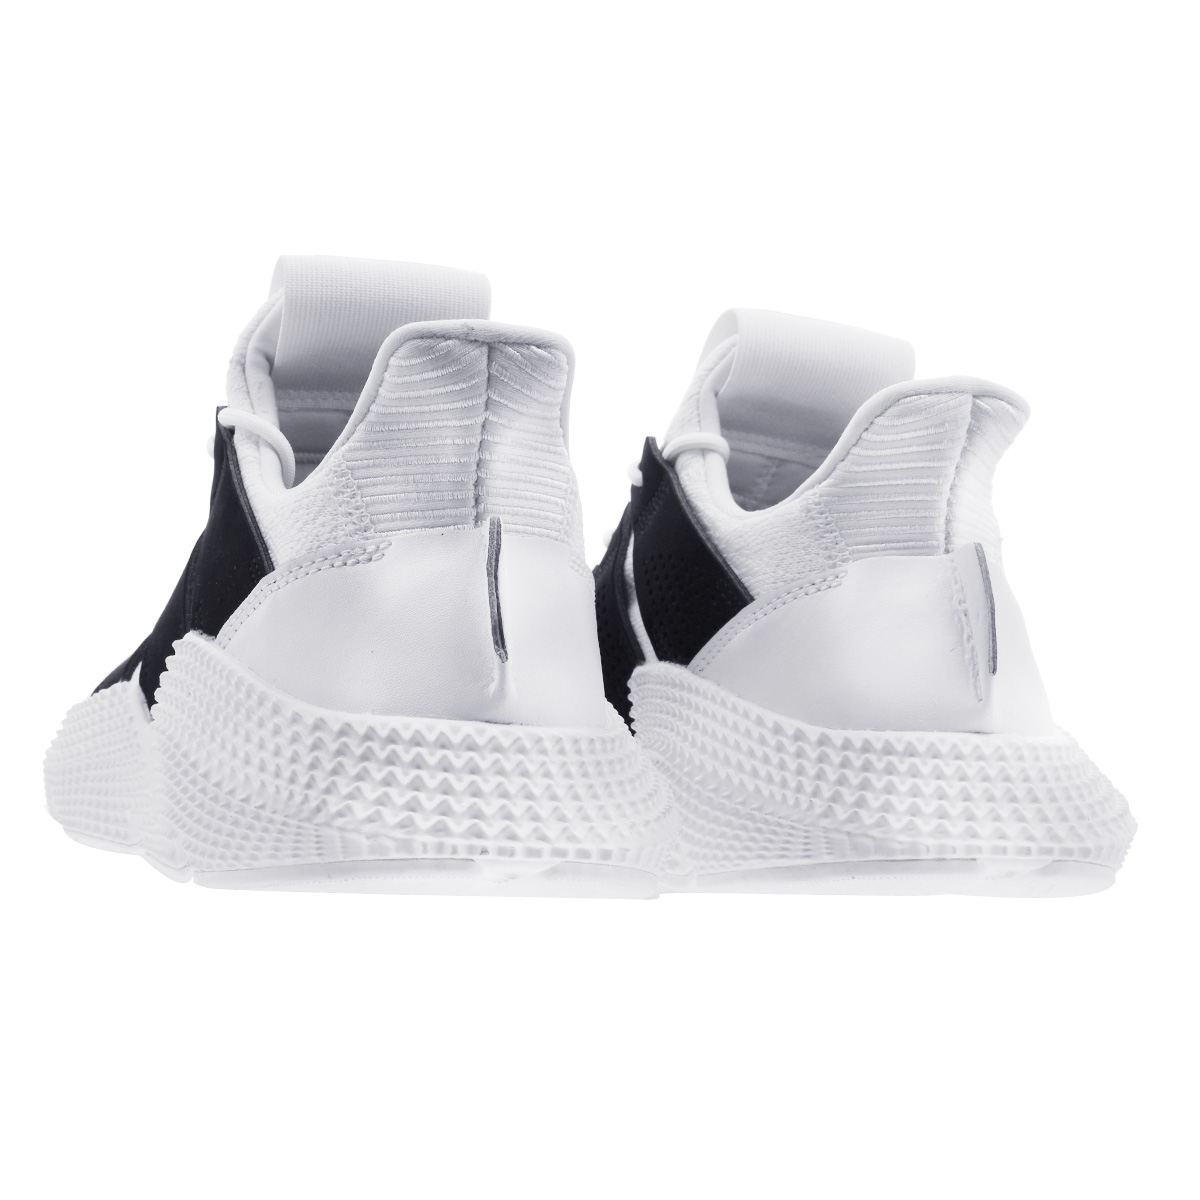 6e18ce17d61fdf adidas PROPHERE Adidas pro Fear RUNNING WHITE CORE BLACK SHOCK LIME d96727